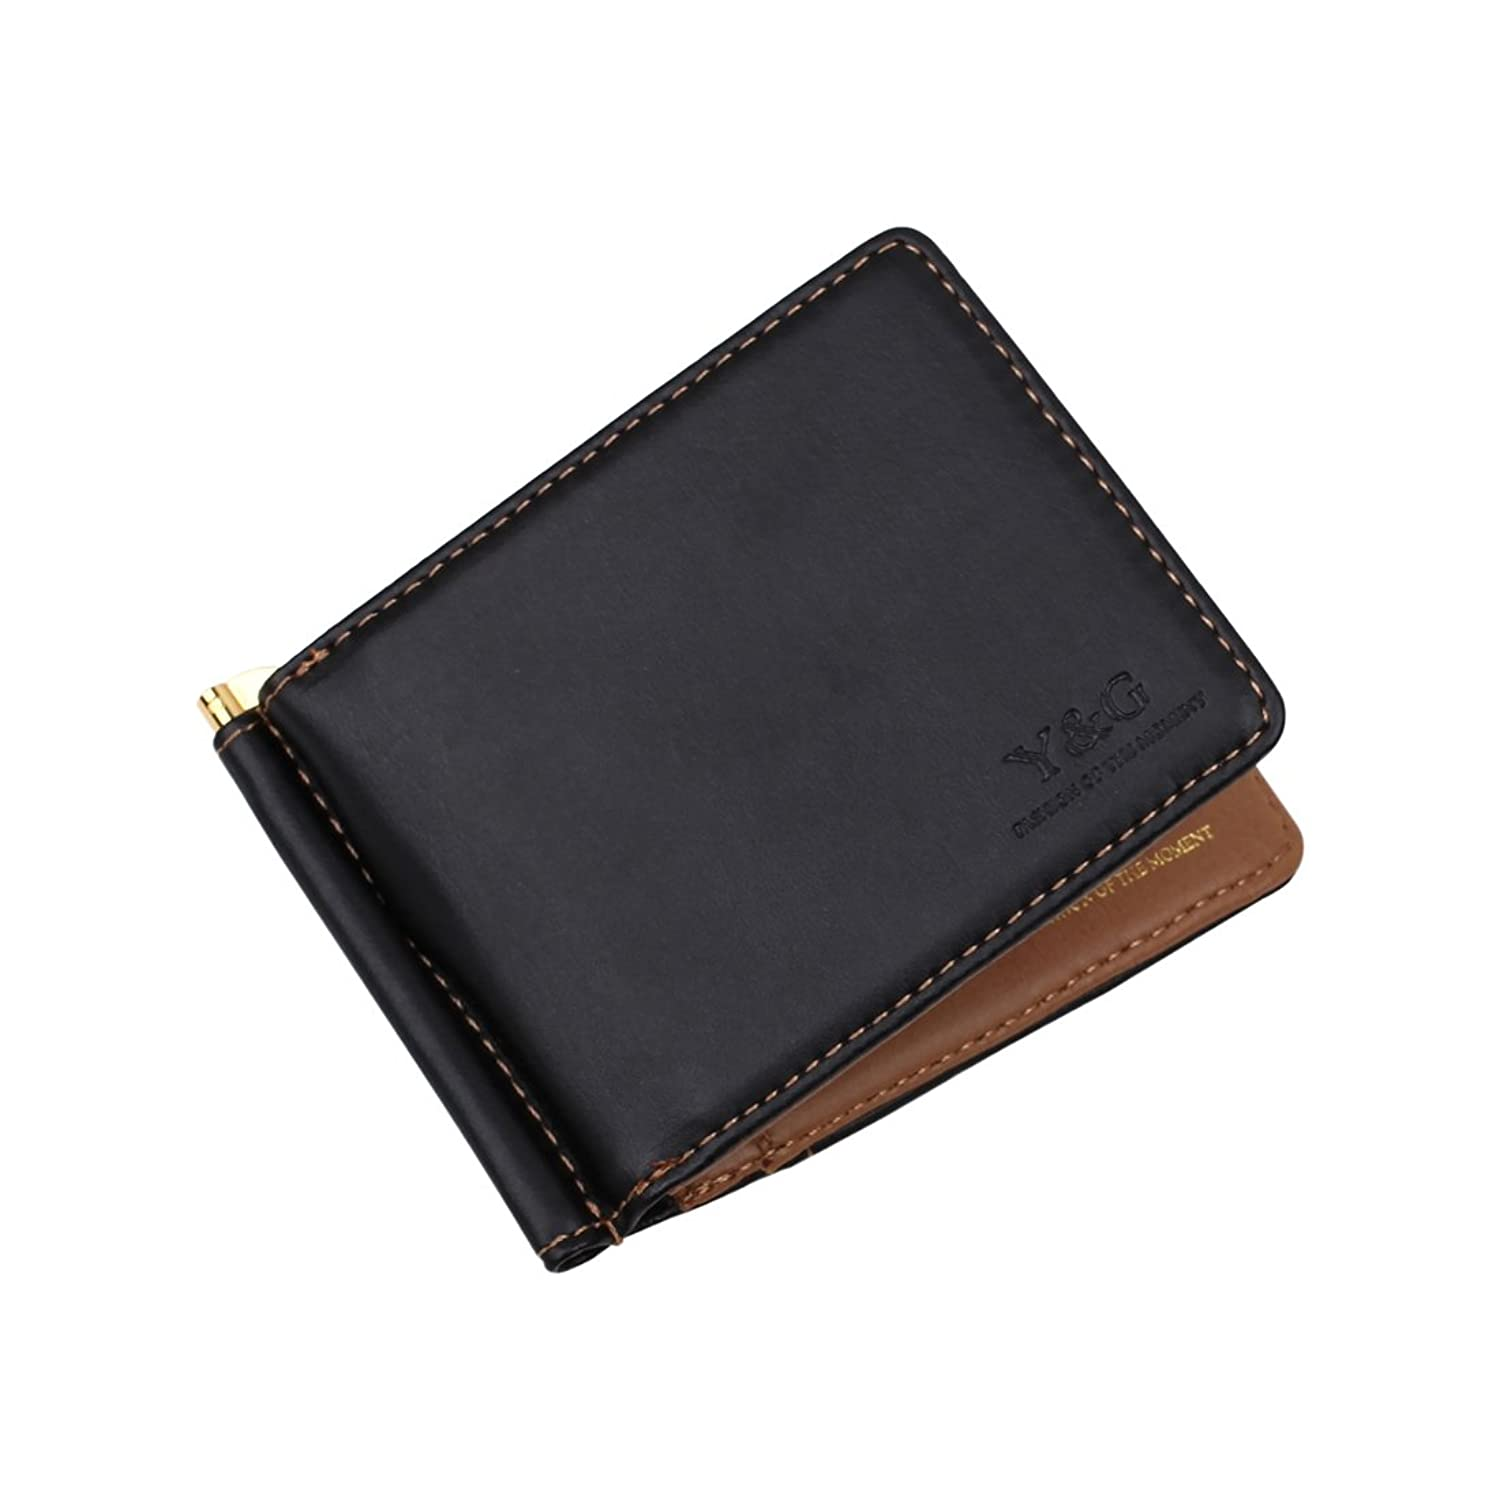 YCM16 Perfect Fashion Leather PU Money Clip Wallet Card Holder By Y&G